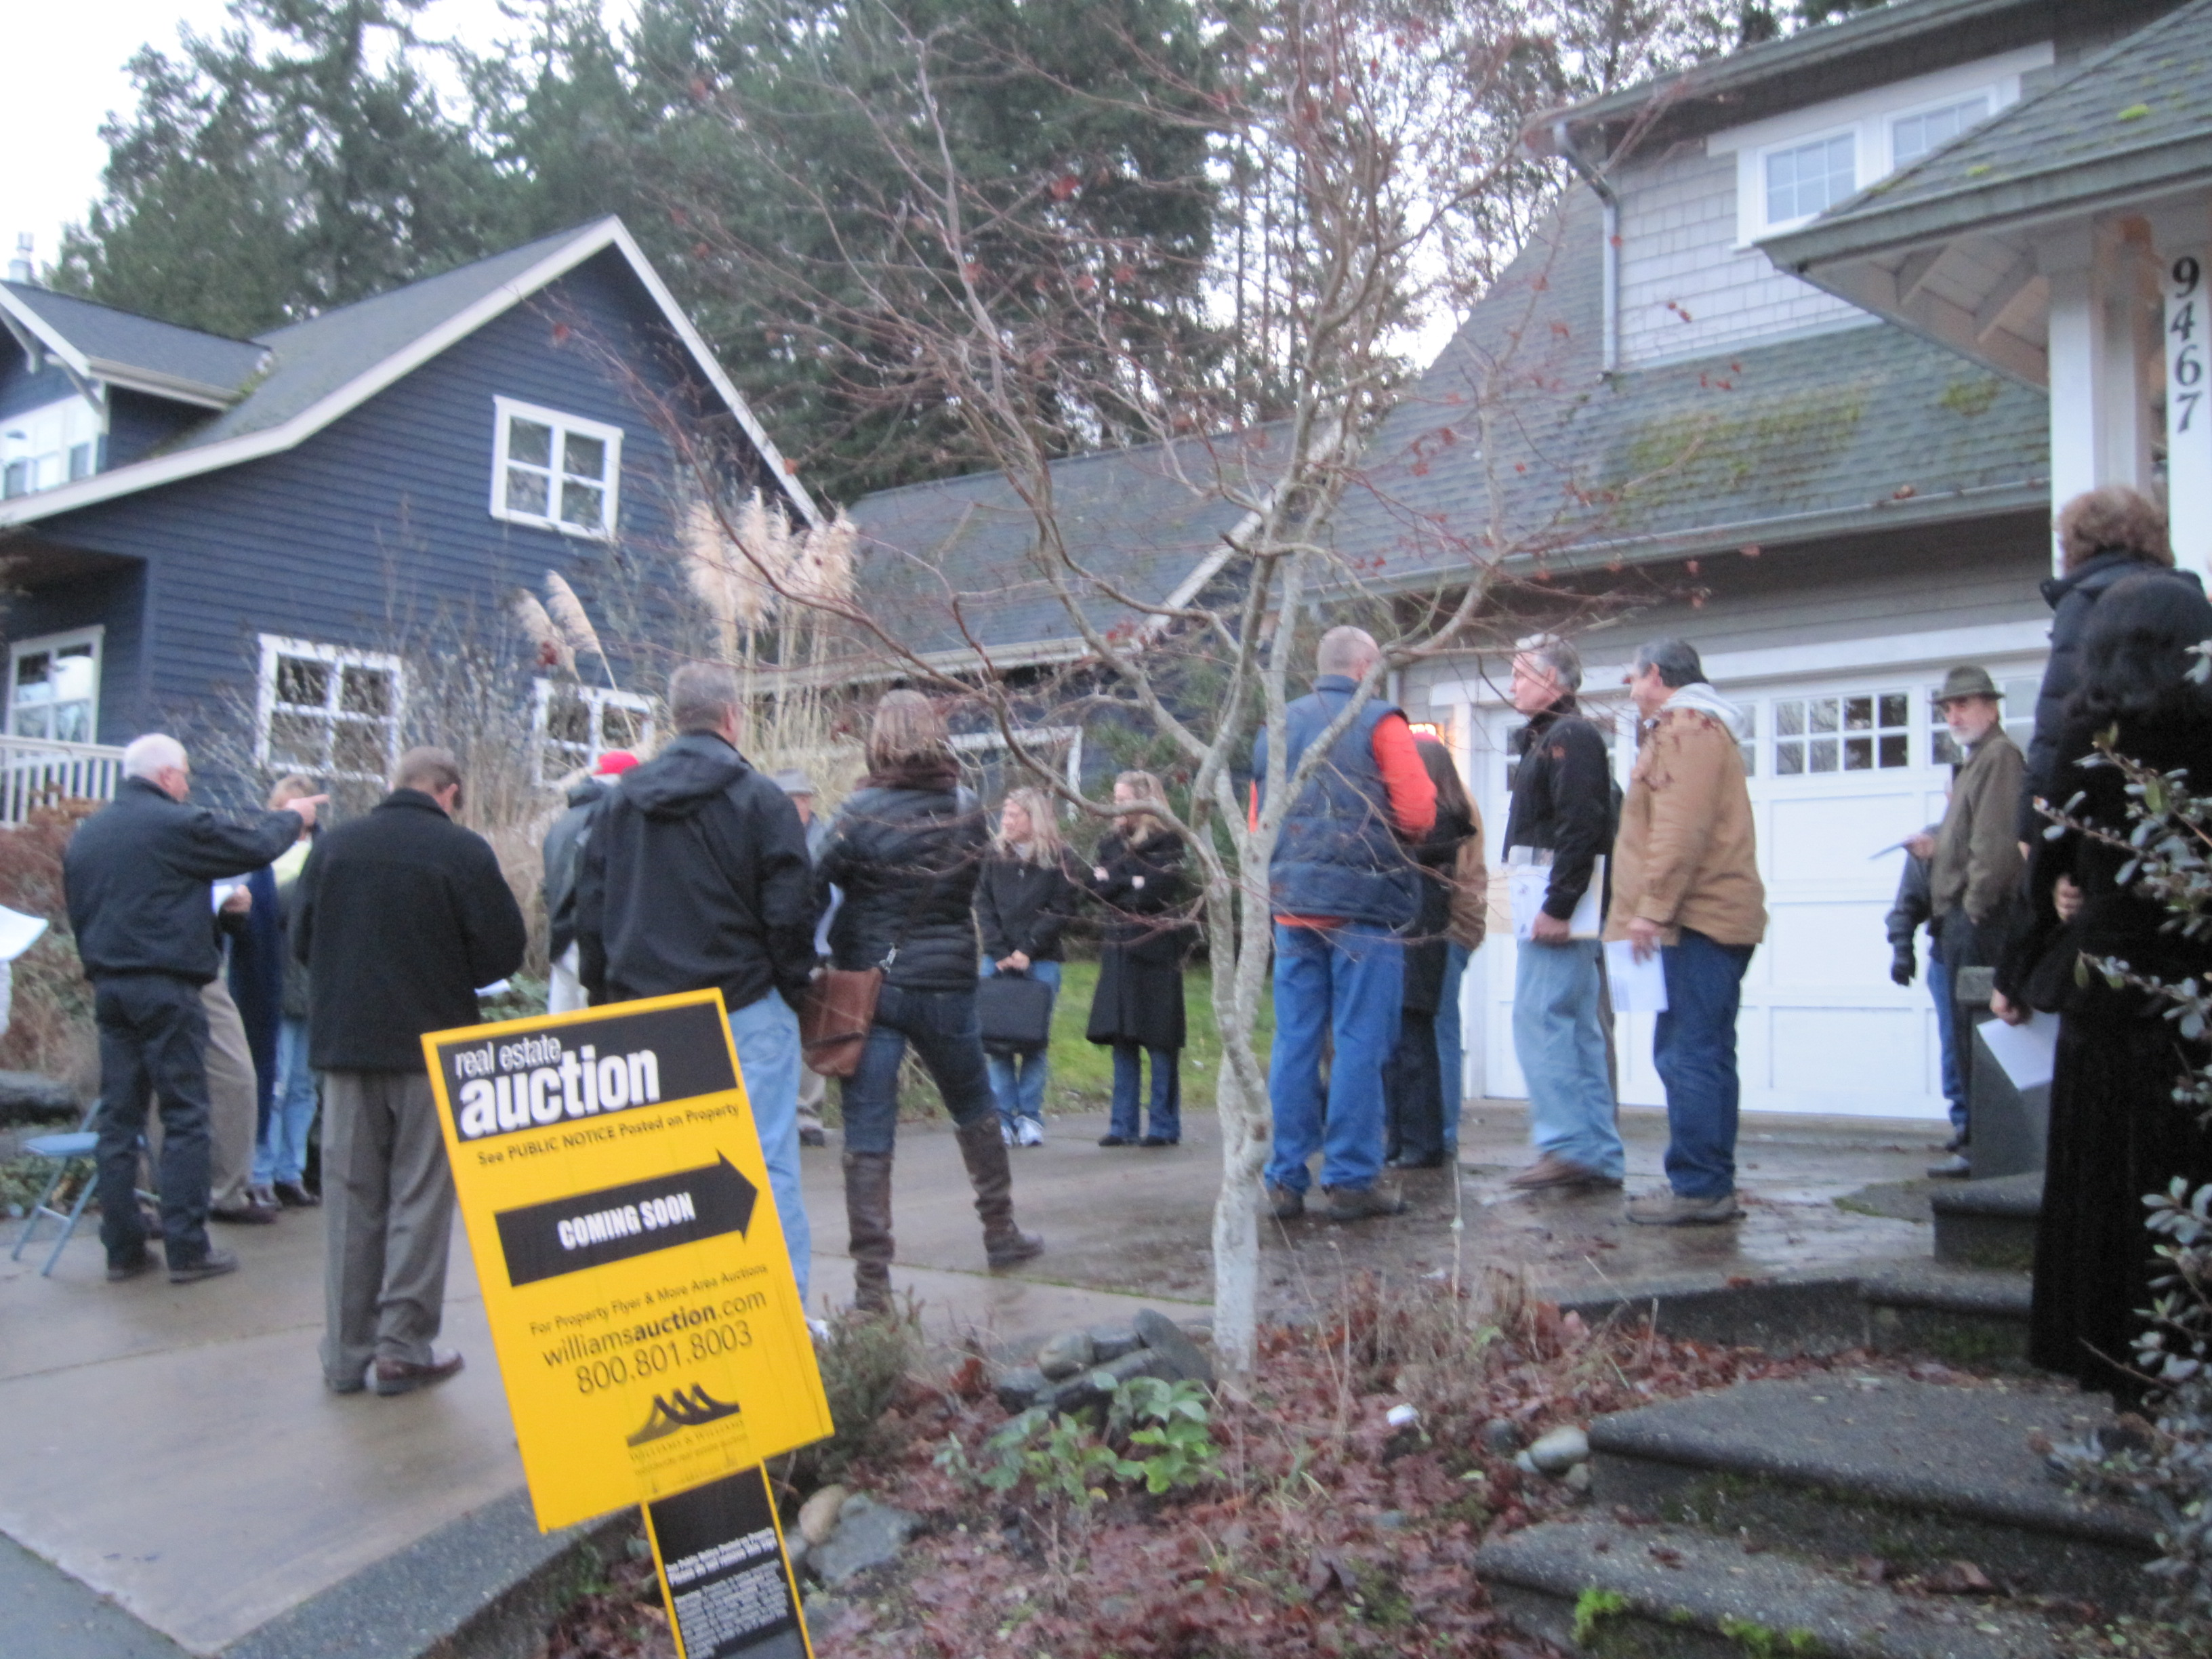 Live Auction on the Driveway in North Town Woods